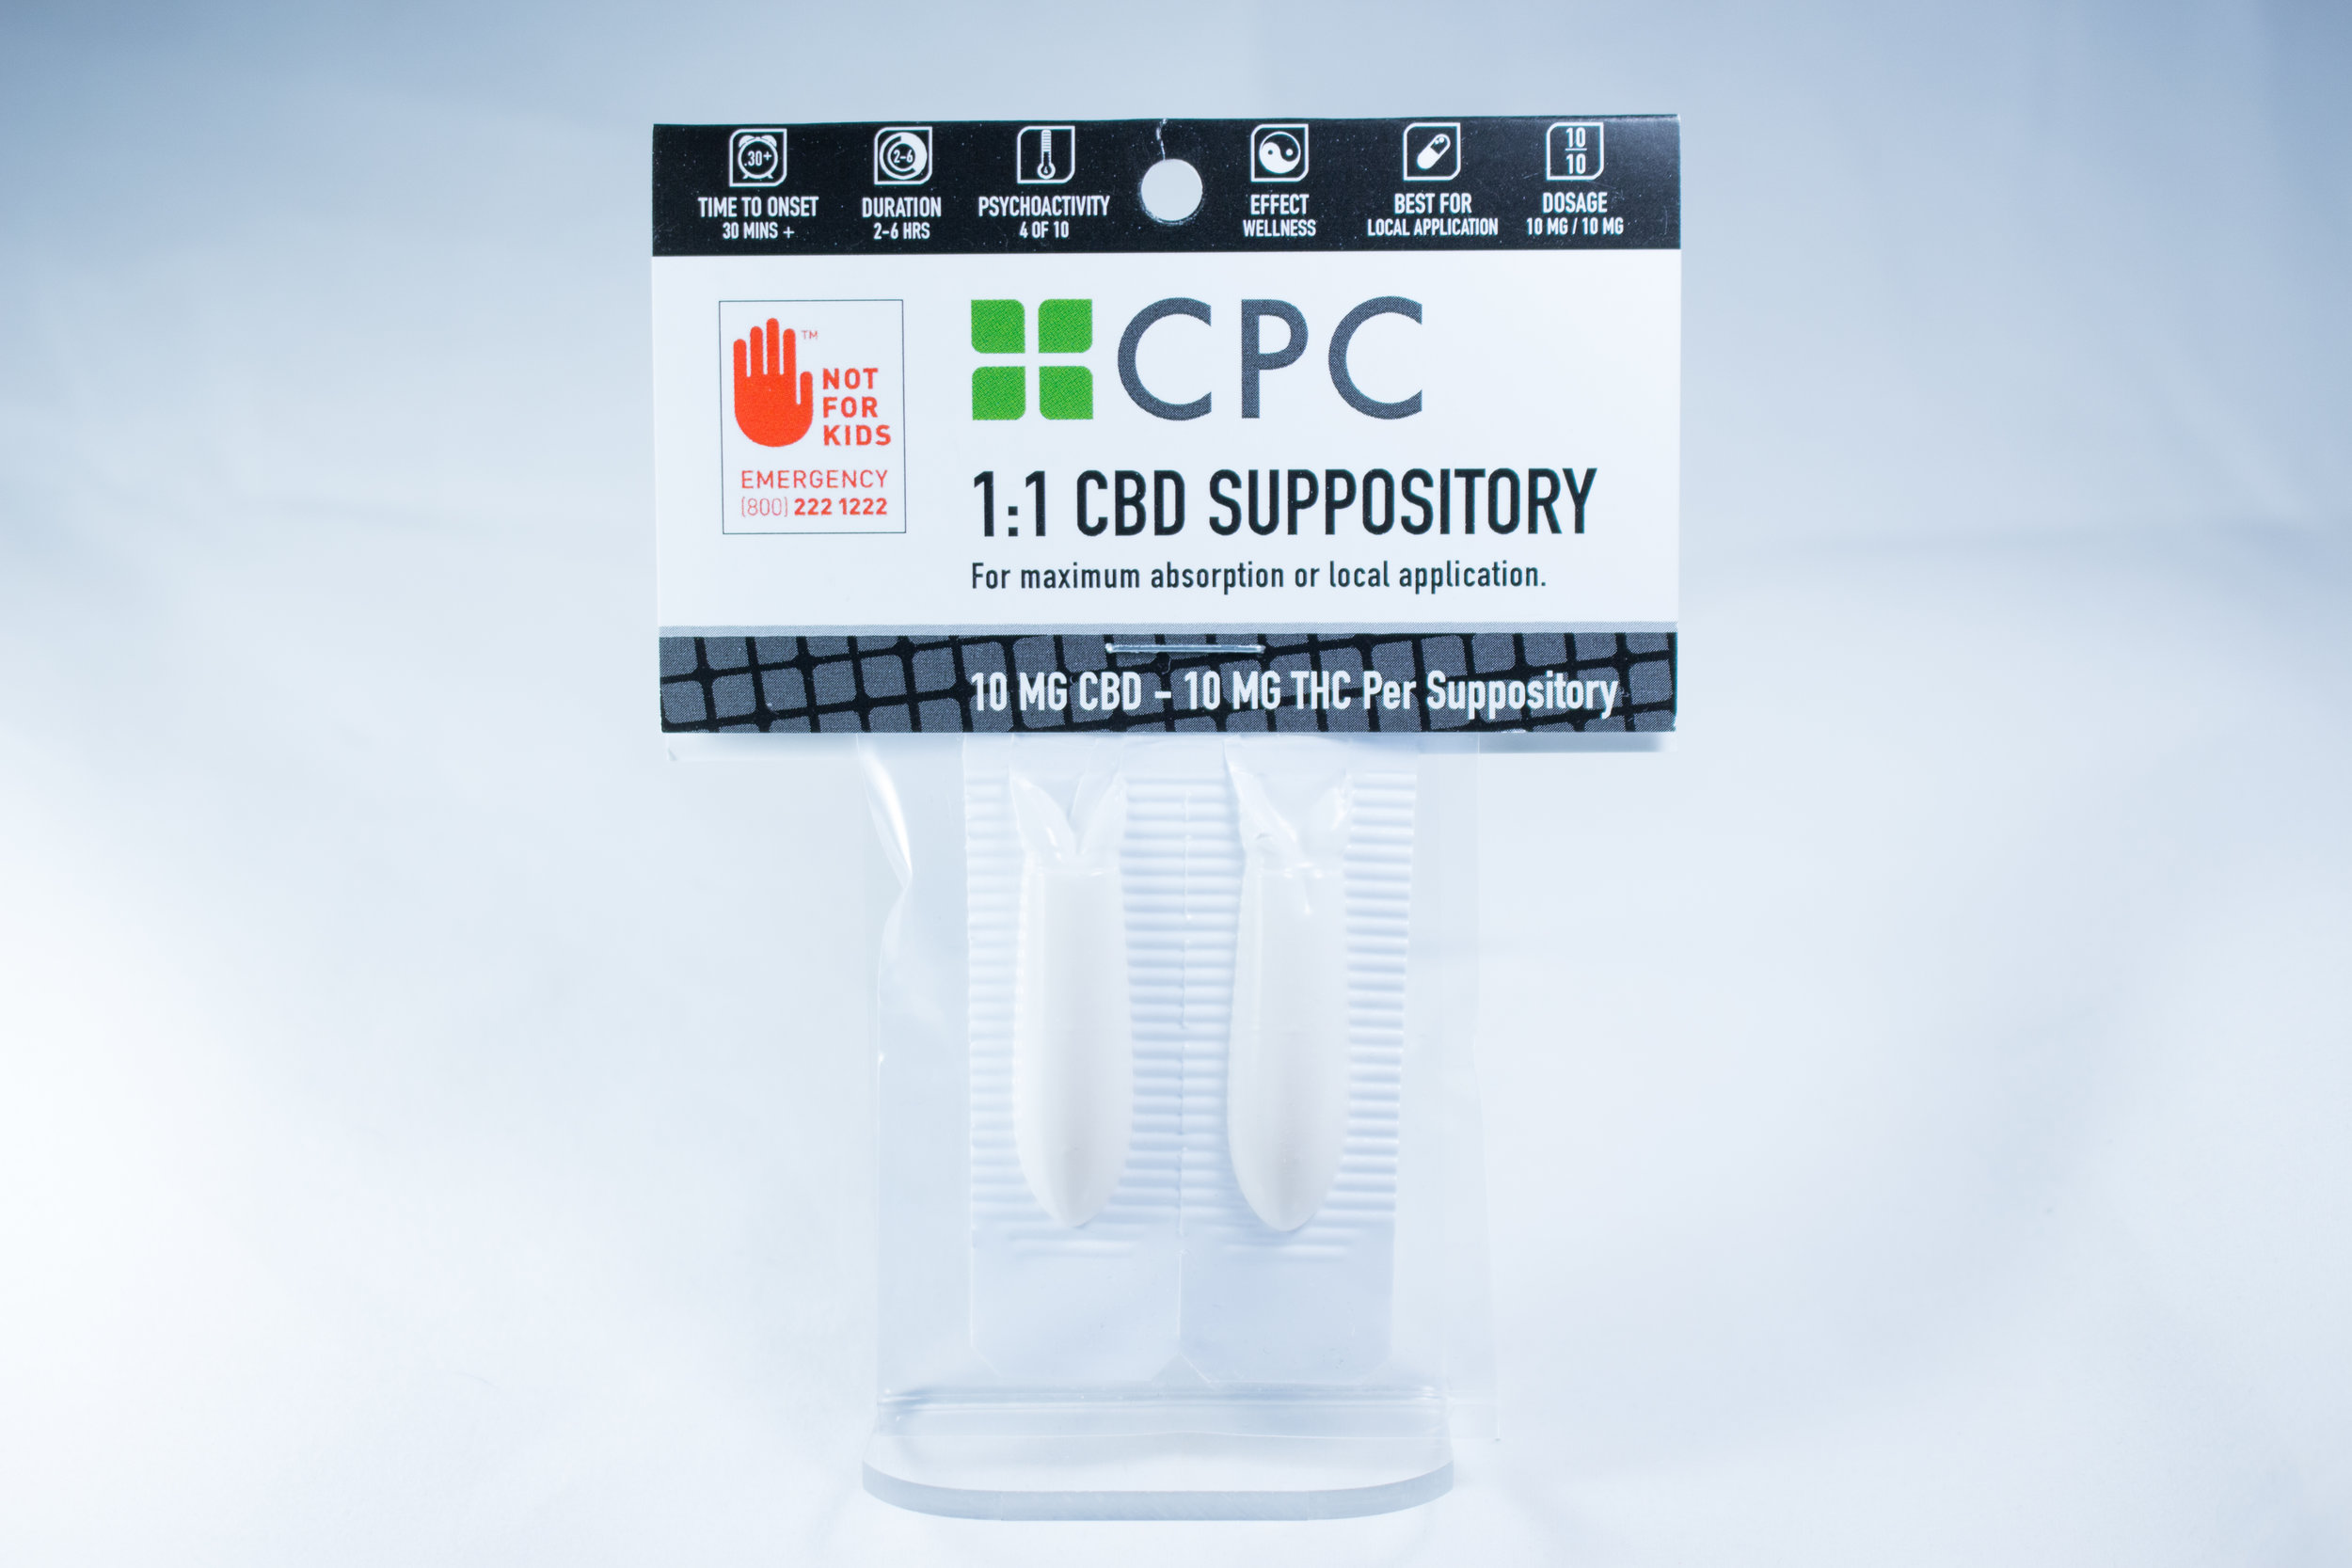 Suppositories   A Cannabis suppository is an incredibly effective way to administer Cannabis for people who have unique conditions that are not served by other methods. The only ingredients are shea butter and Cannabis extract.  Learn more...